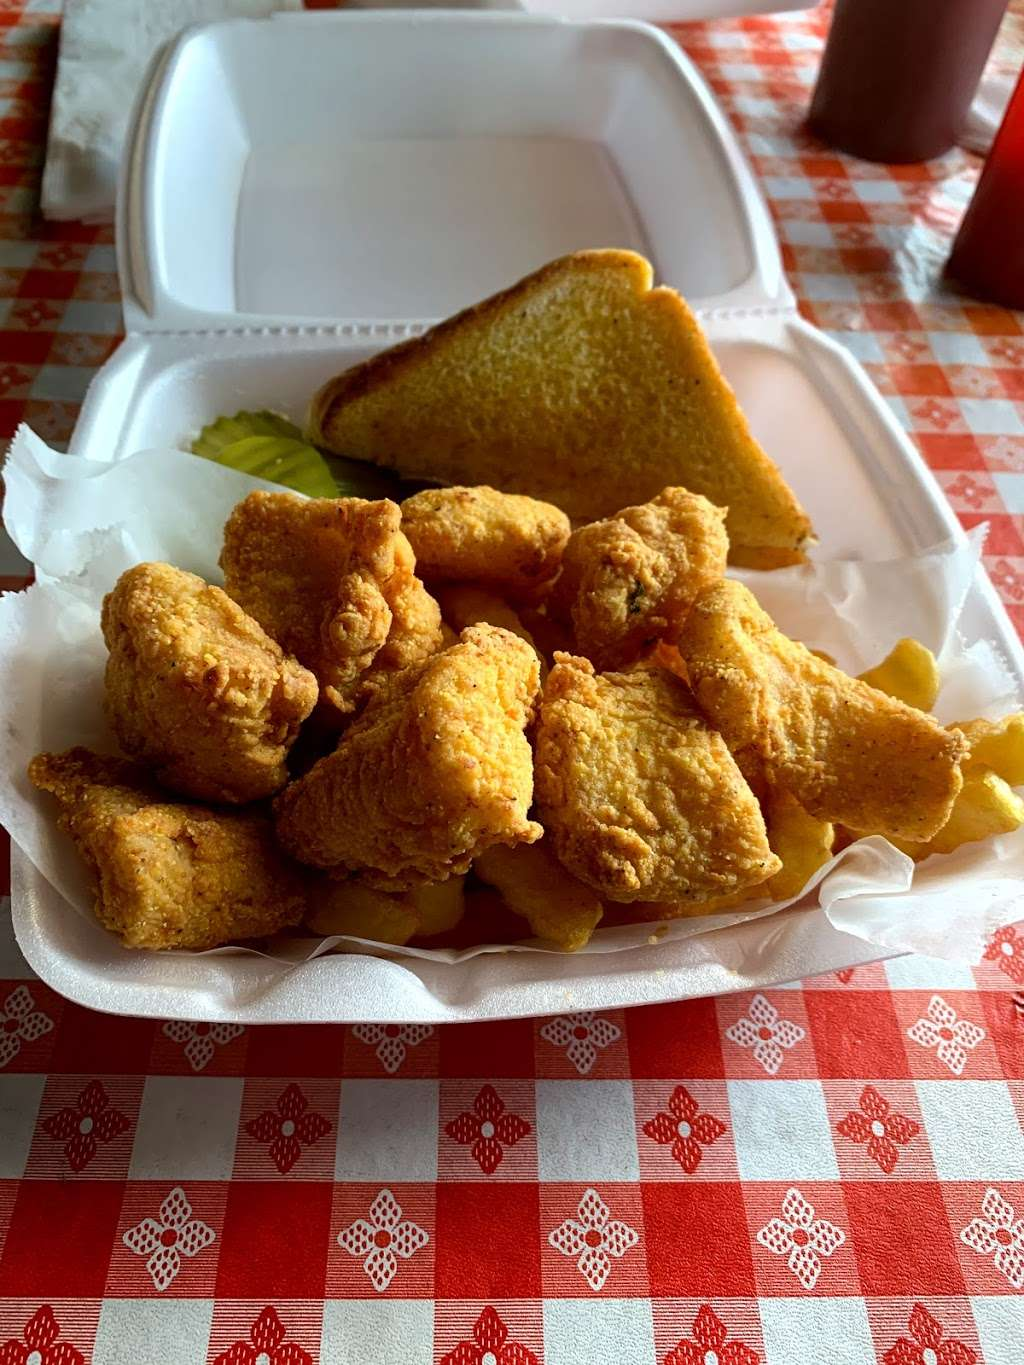 Sunday Morning Catfish and More - restaurant    Photo 10 of 10   Address: 1038 Pioneer Rd, Mesquite, TX 75149, USA   Phone: (214) 994-6476